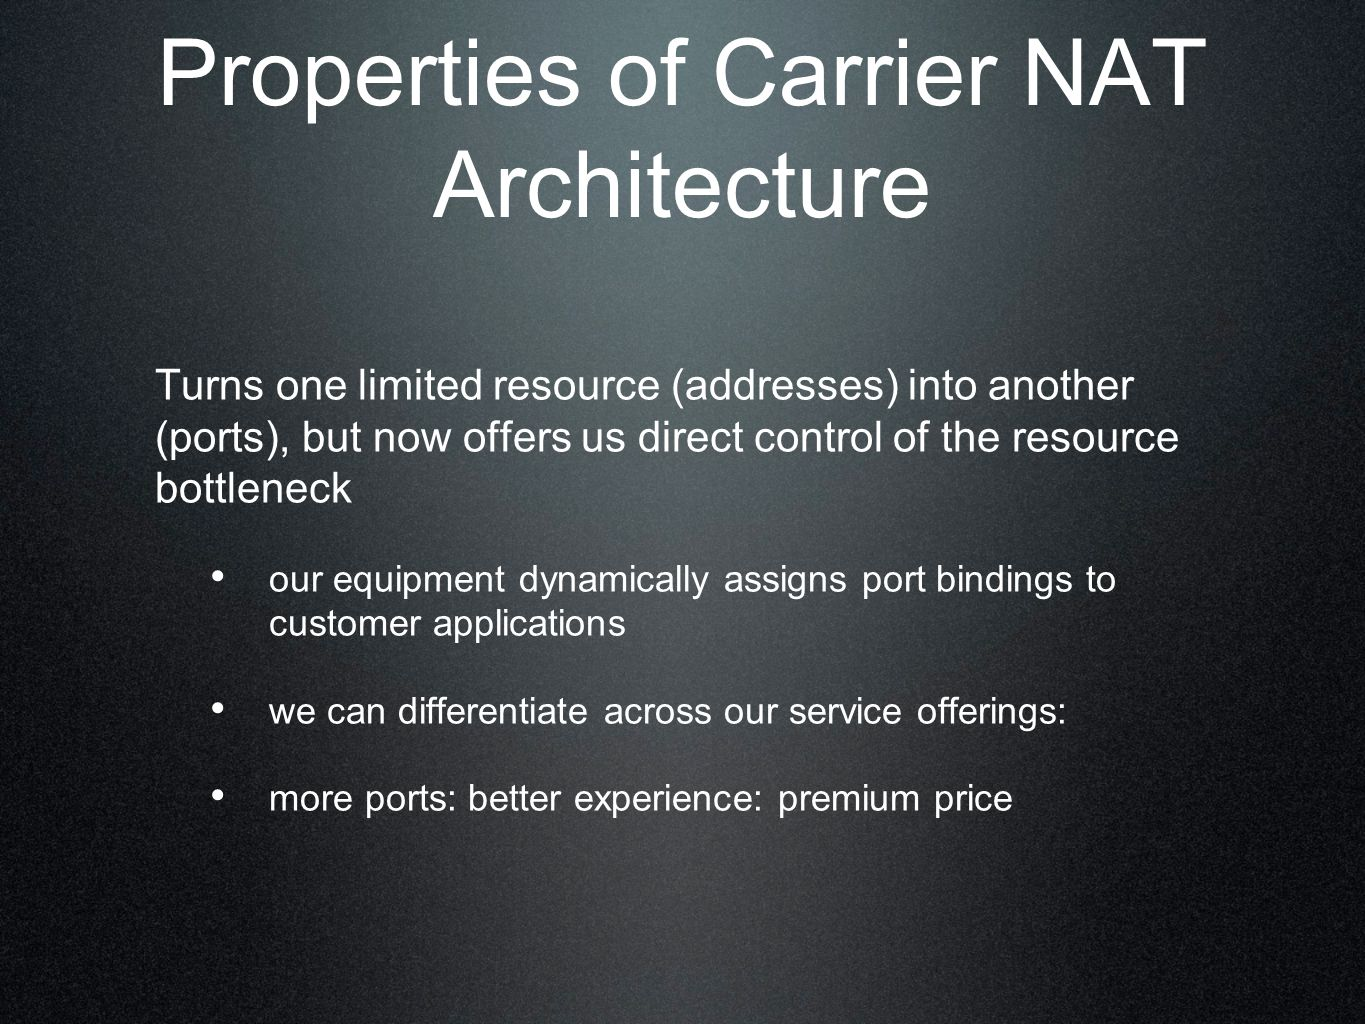 Properties of Carrier NAT Architecture Turns one limited resource (addresses) into another (ports), but now offers us direct control of the resource bottleneck our equipment dynamically assigns port bindings to customer applications we can differentiate across our service offerings: more ports: better experience: premium price